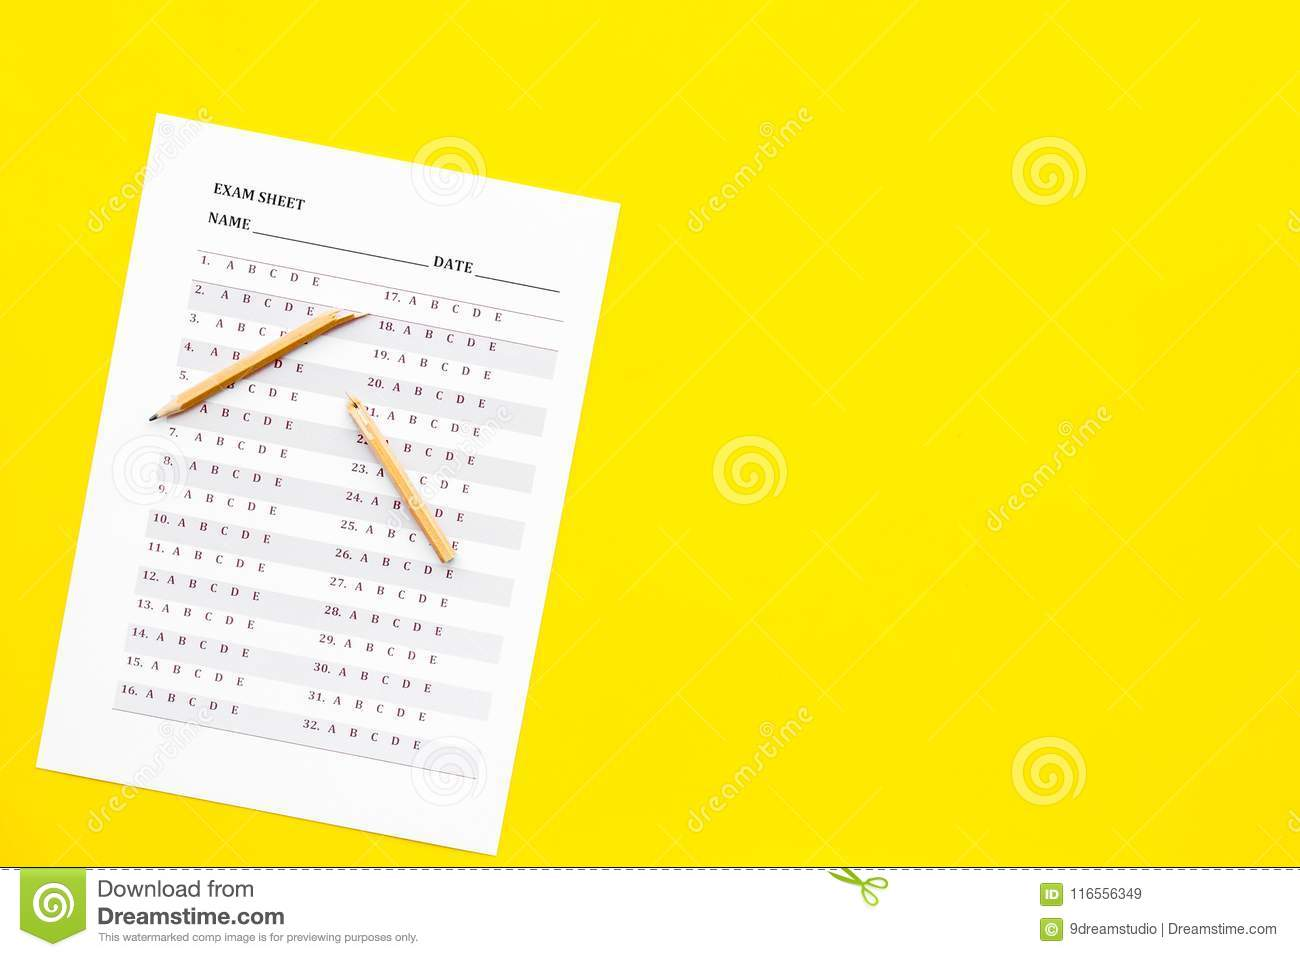 Exam Sheet On Yellow Table Top View Copy Space  Education